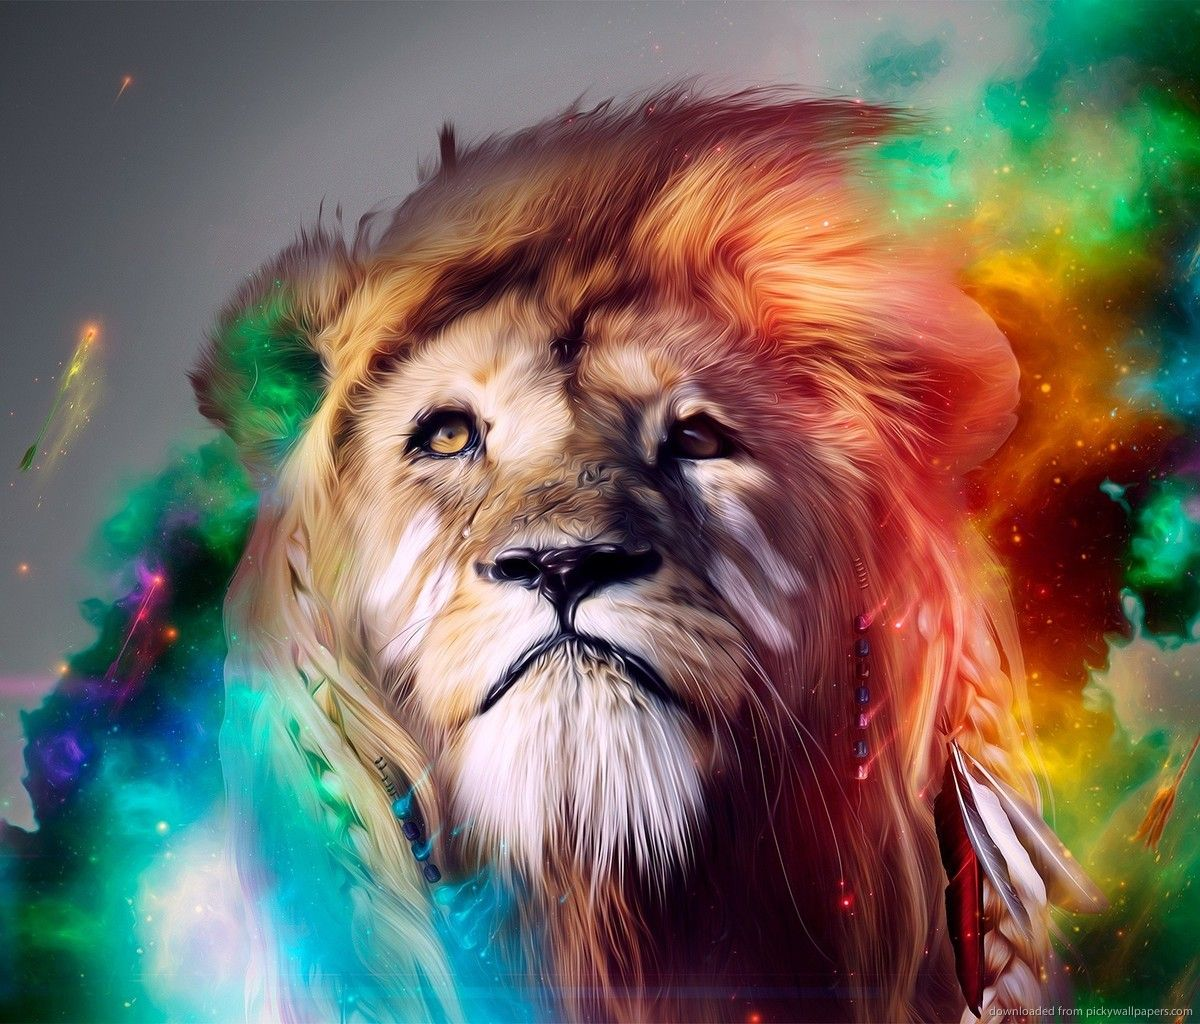 Colorful Lion Art For Samsung Galaxy Tab Wallpaper In 2019 Lion